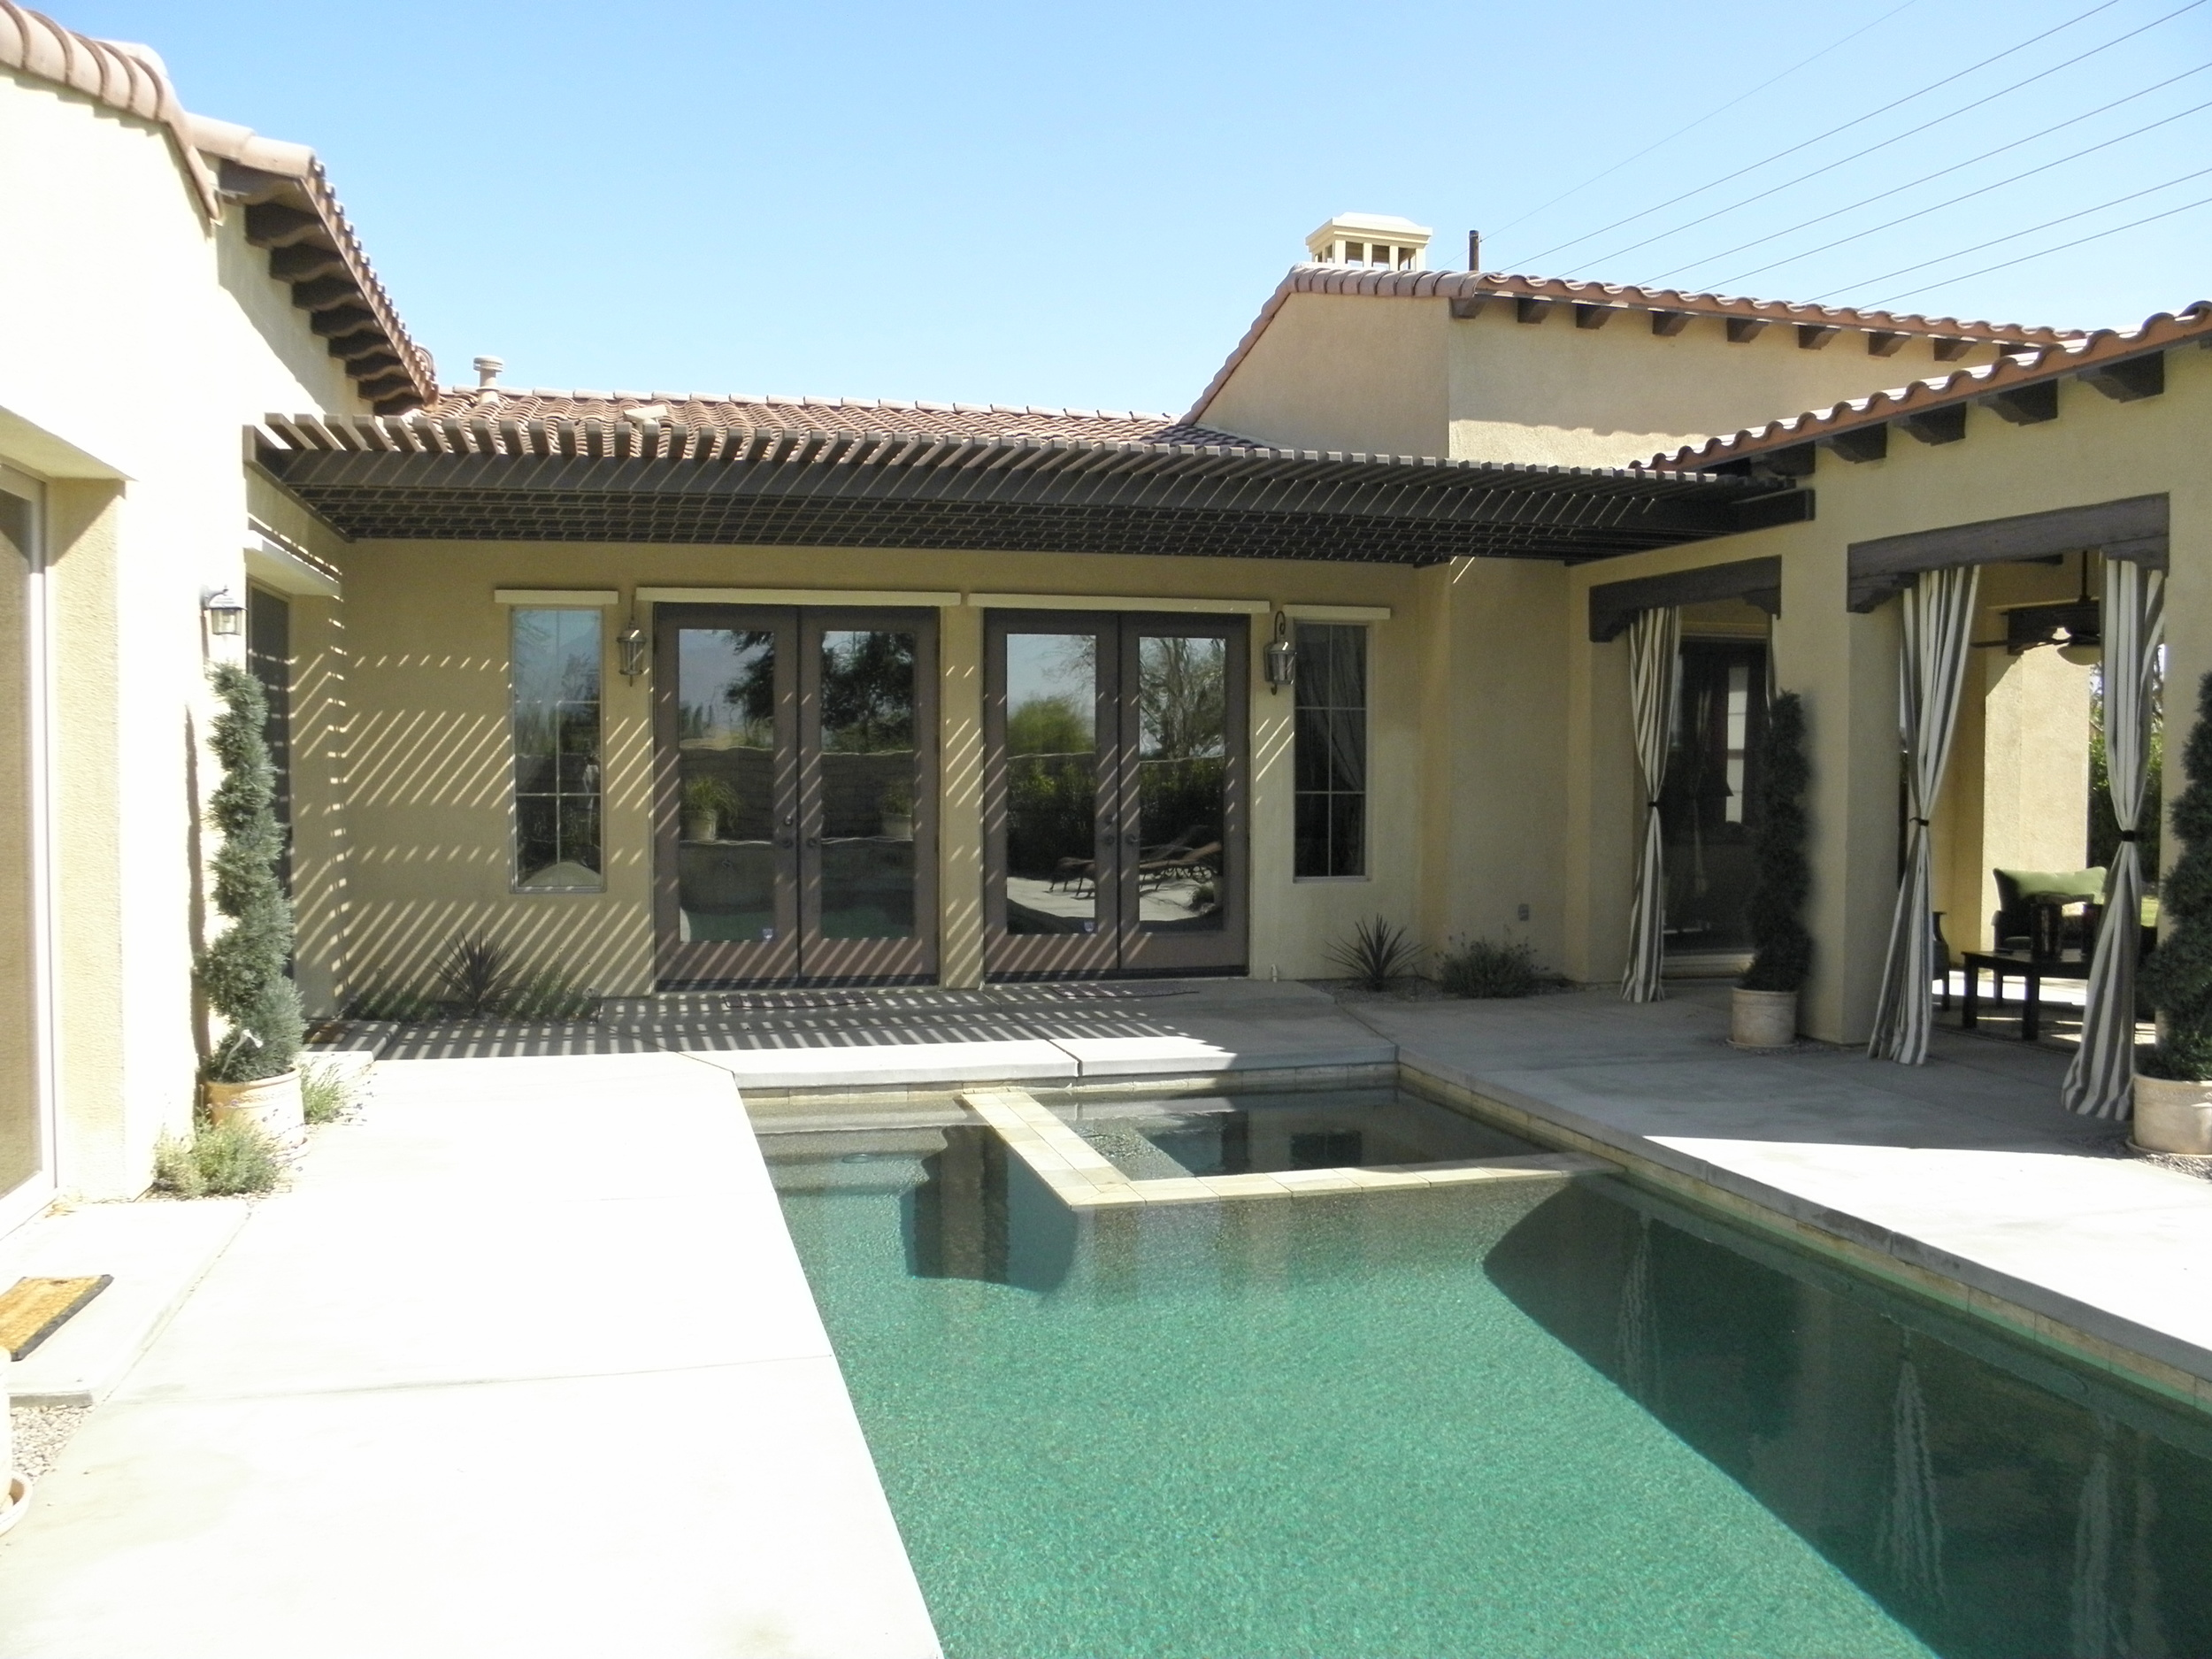 Lattice Patio Cover Custom Fit, La Quinta, CA 92253